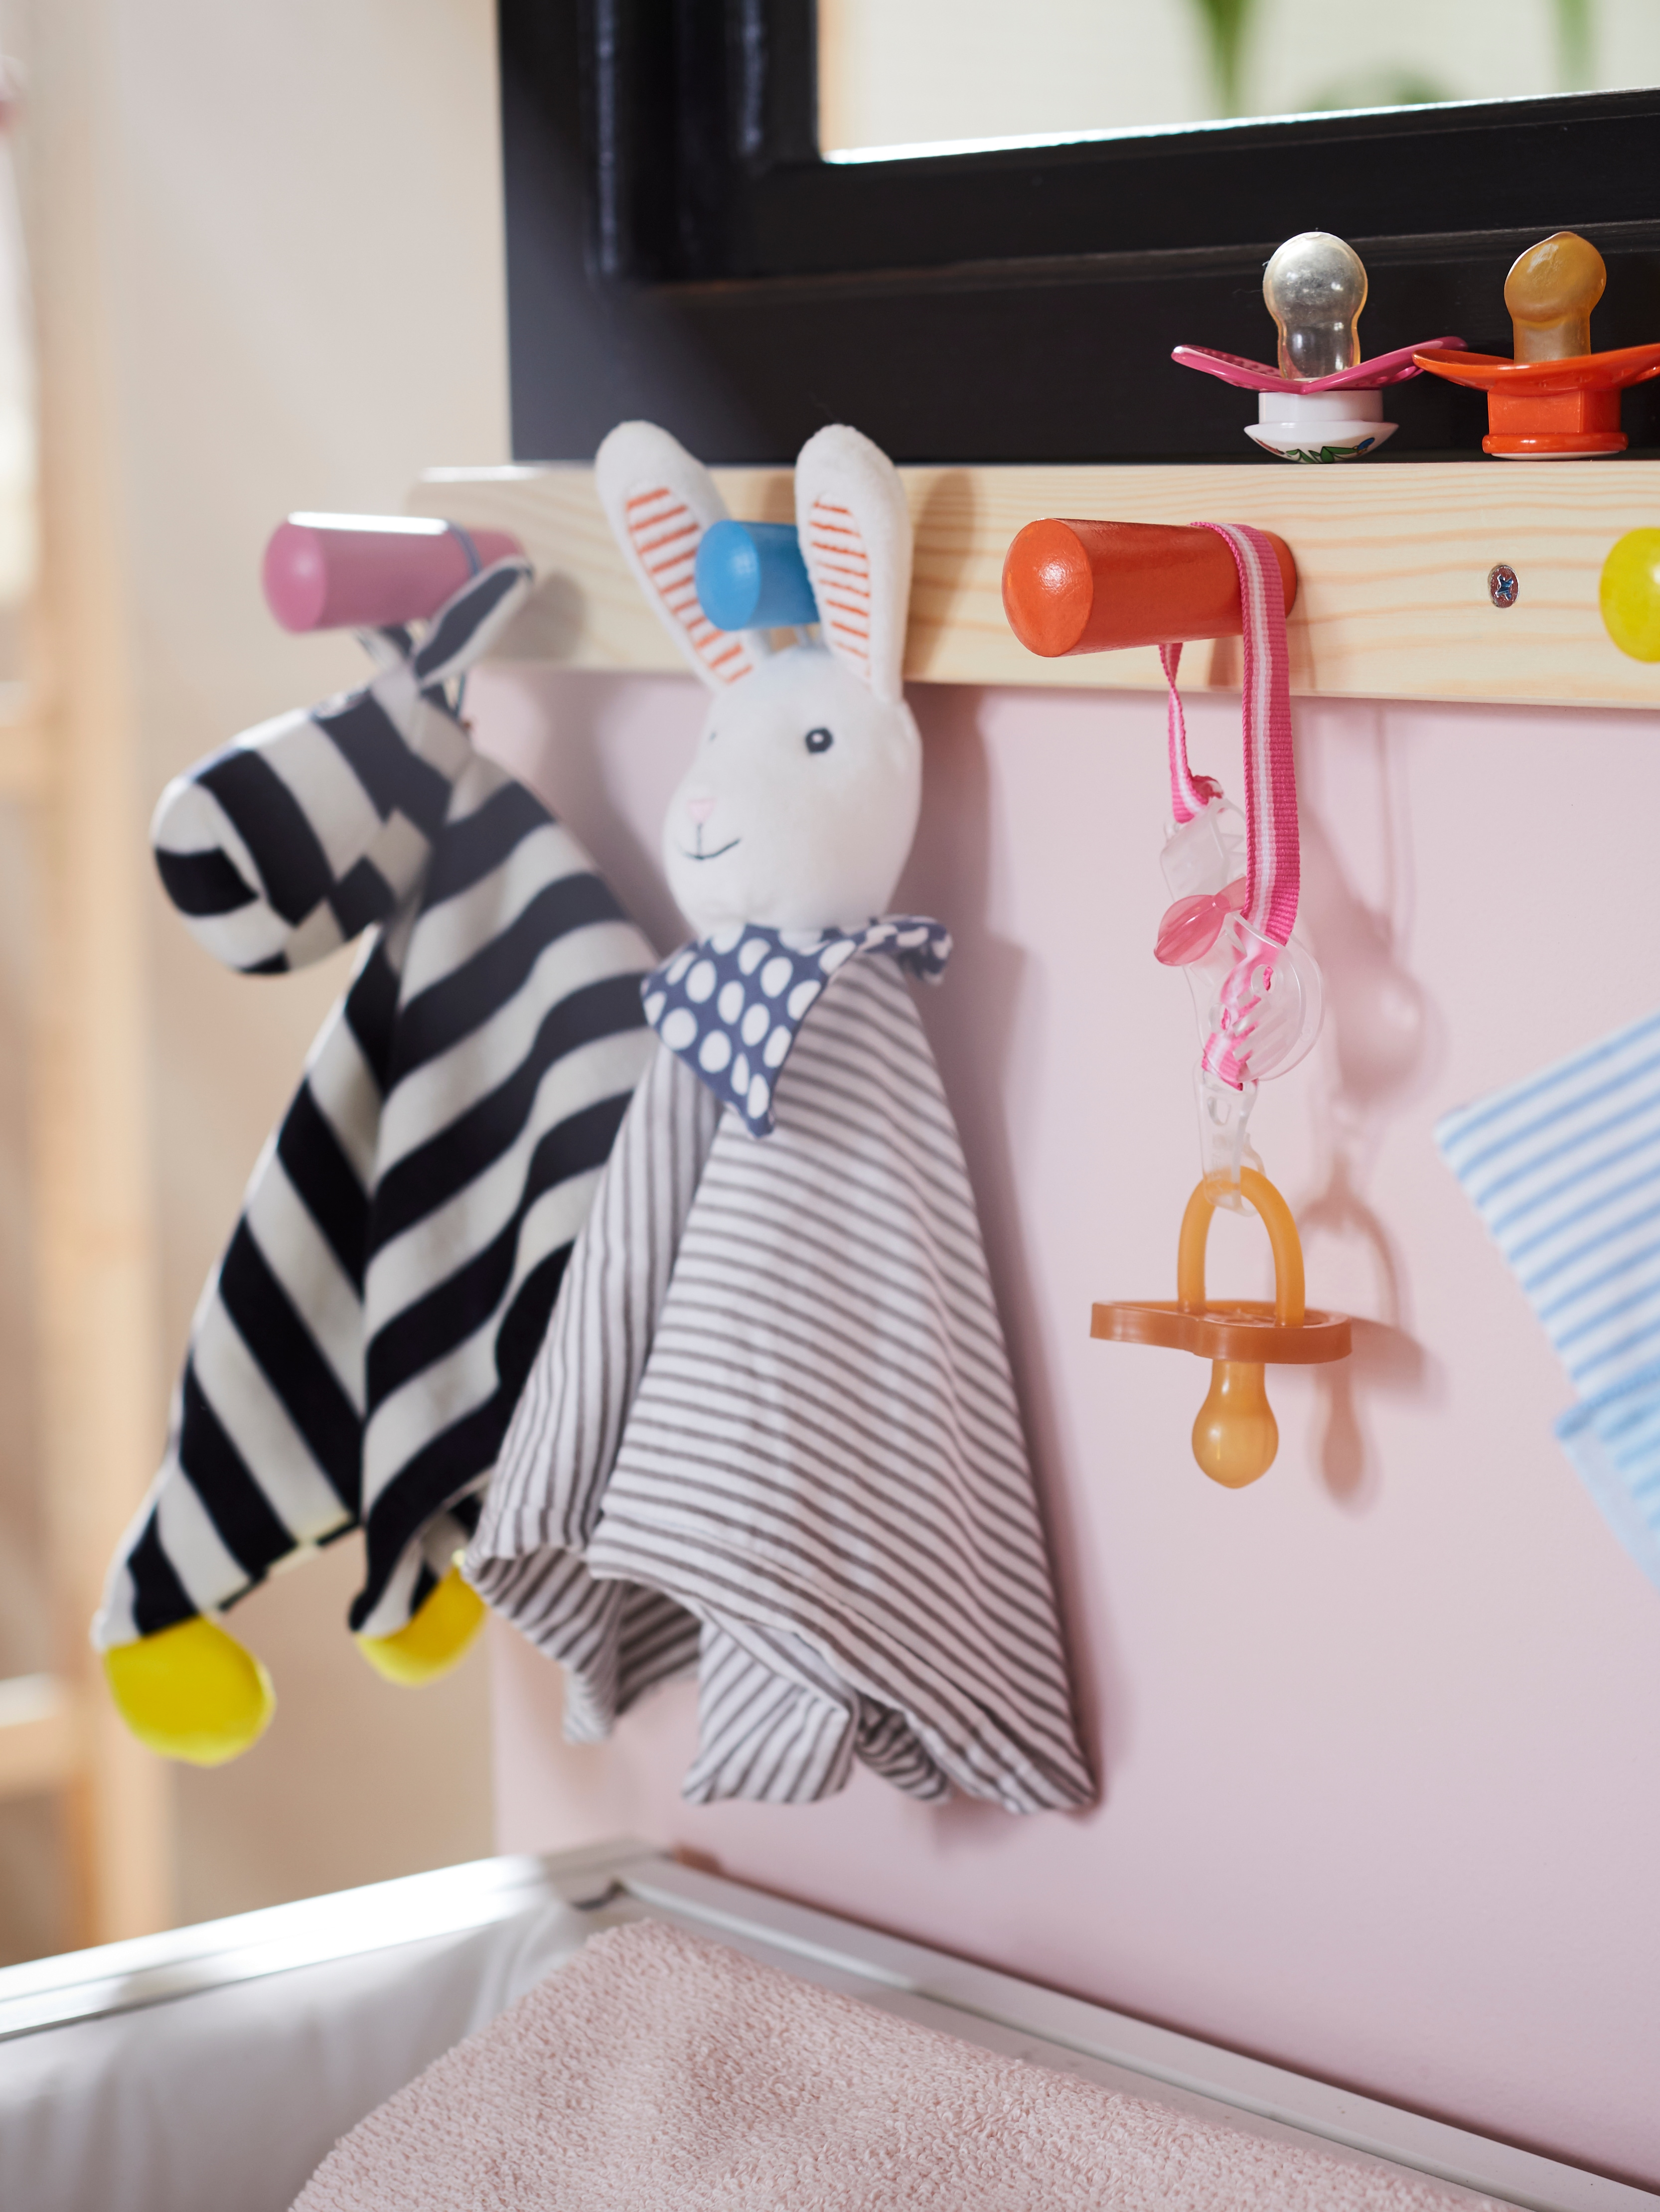 A FLISAT rack with four brightly coloured knobs on a pink wall, holding two KLAPPA comfort blankets and a soother.